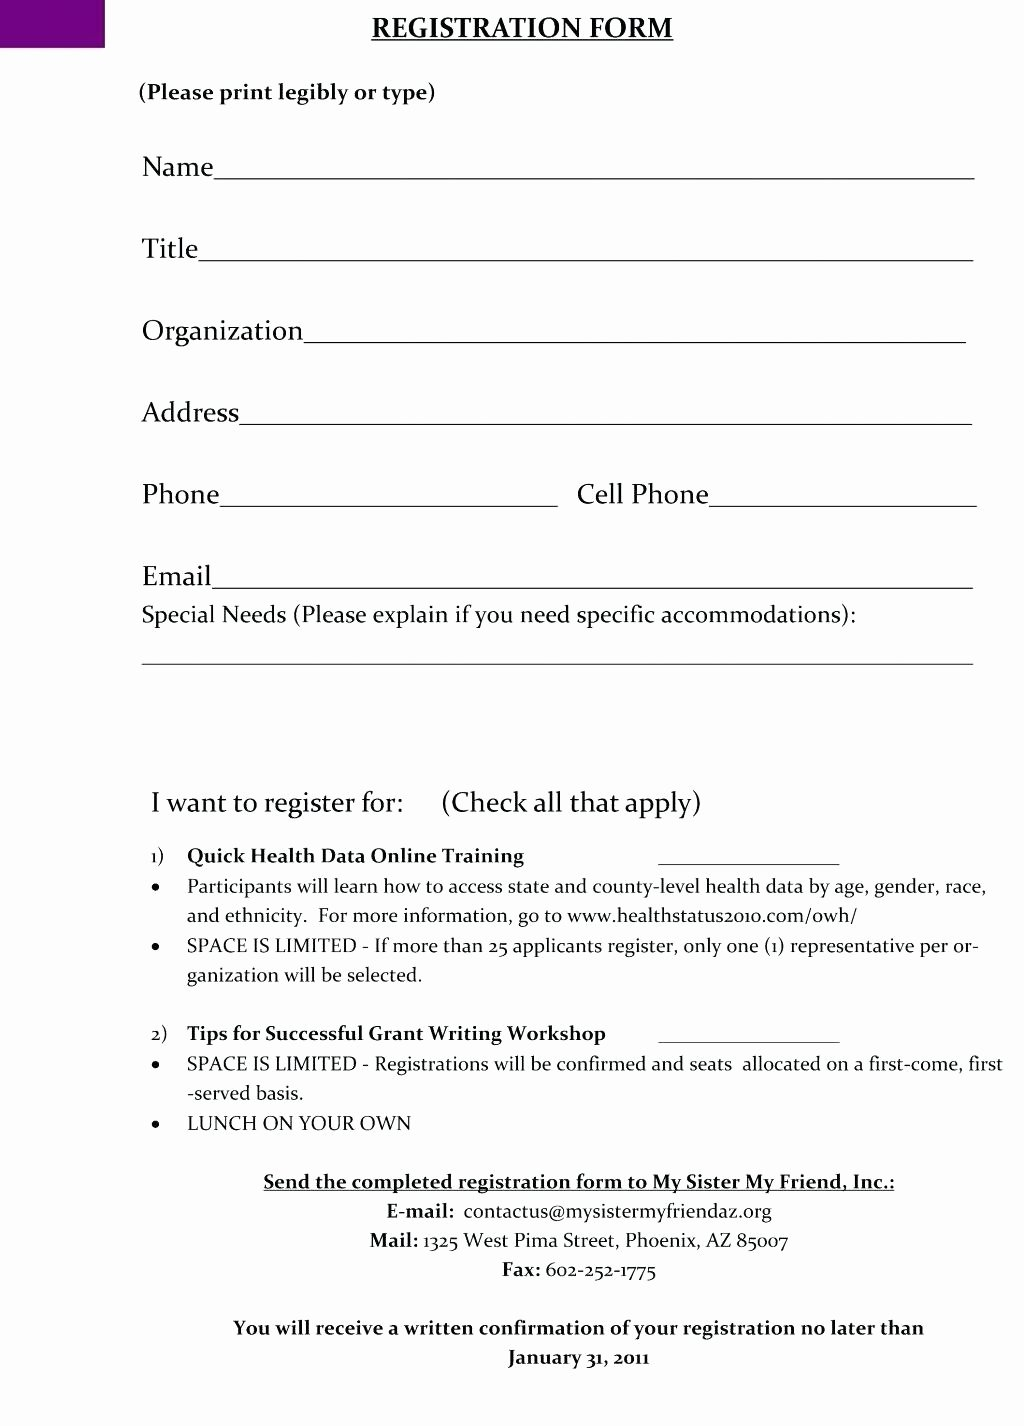 Training Registration form Template